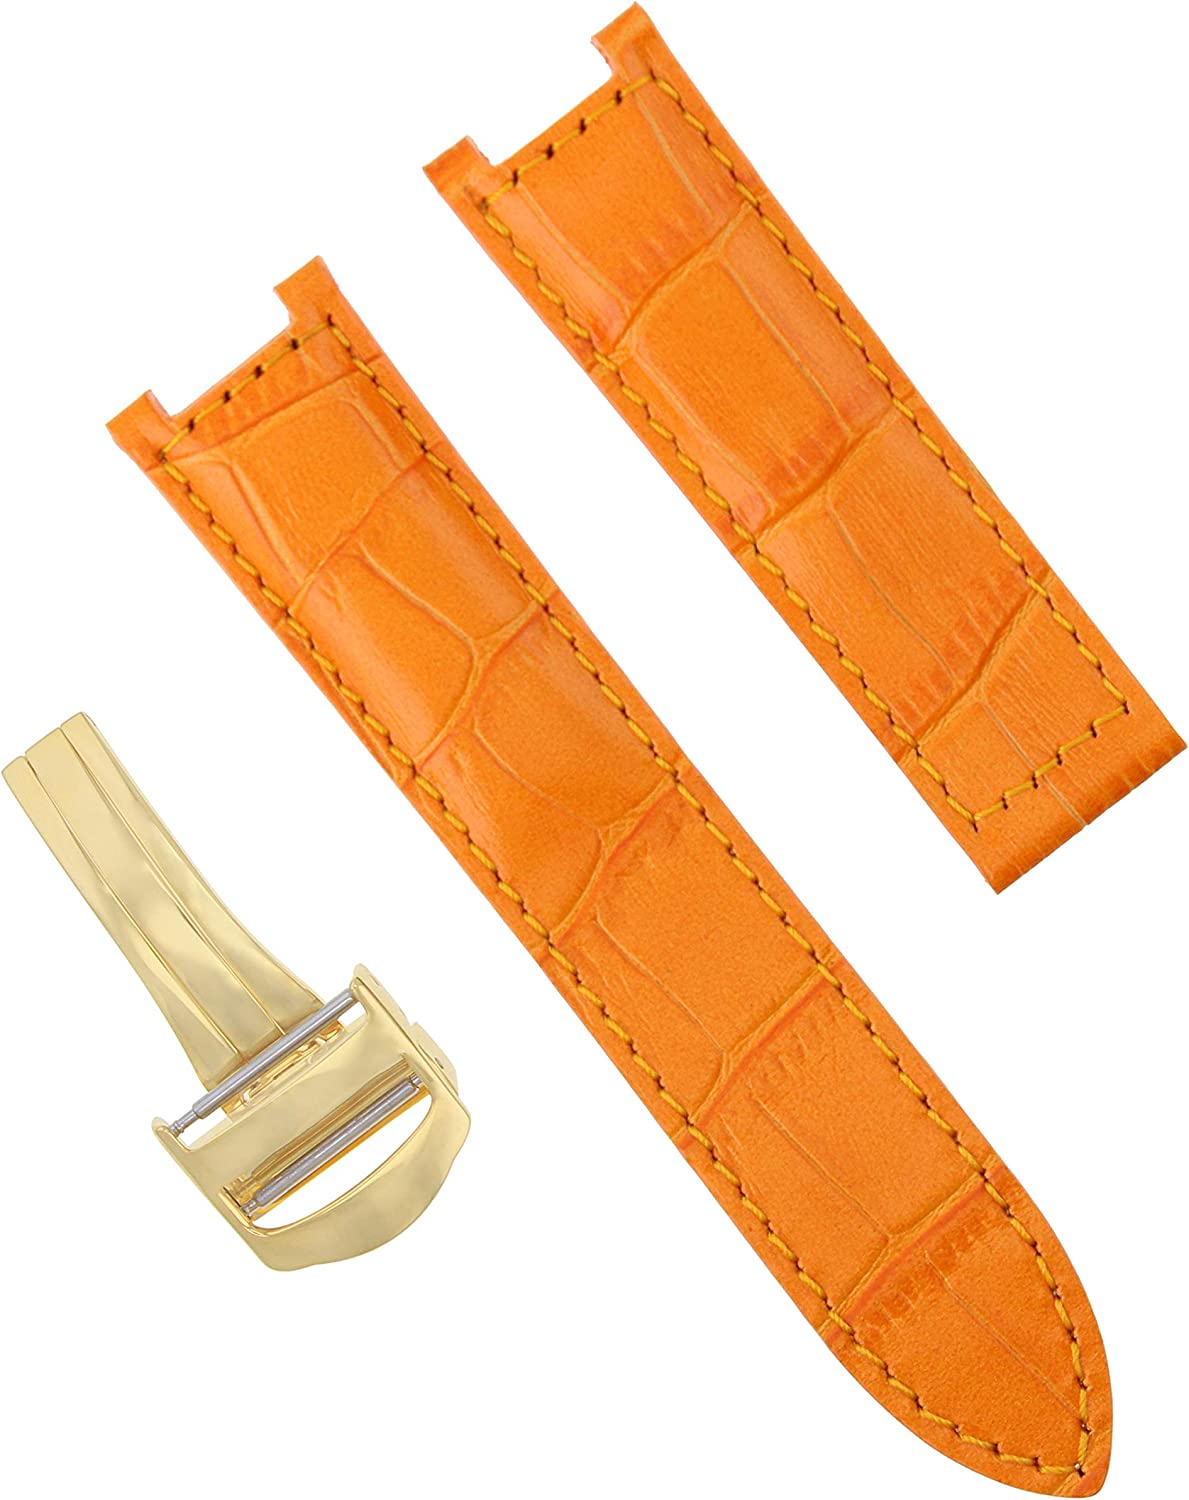 21mm Leather Strap Band Clasp 42mm Great Ranking TOP9 interest Pasha with Cartier Compatible